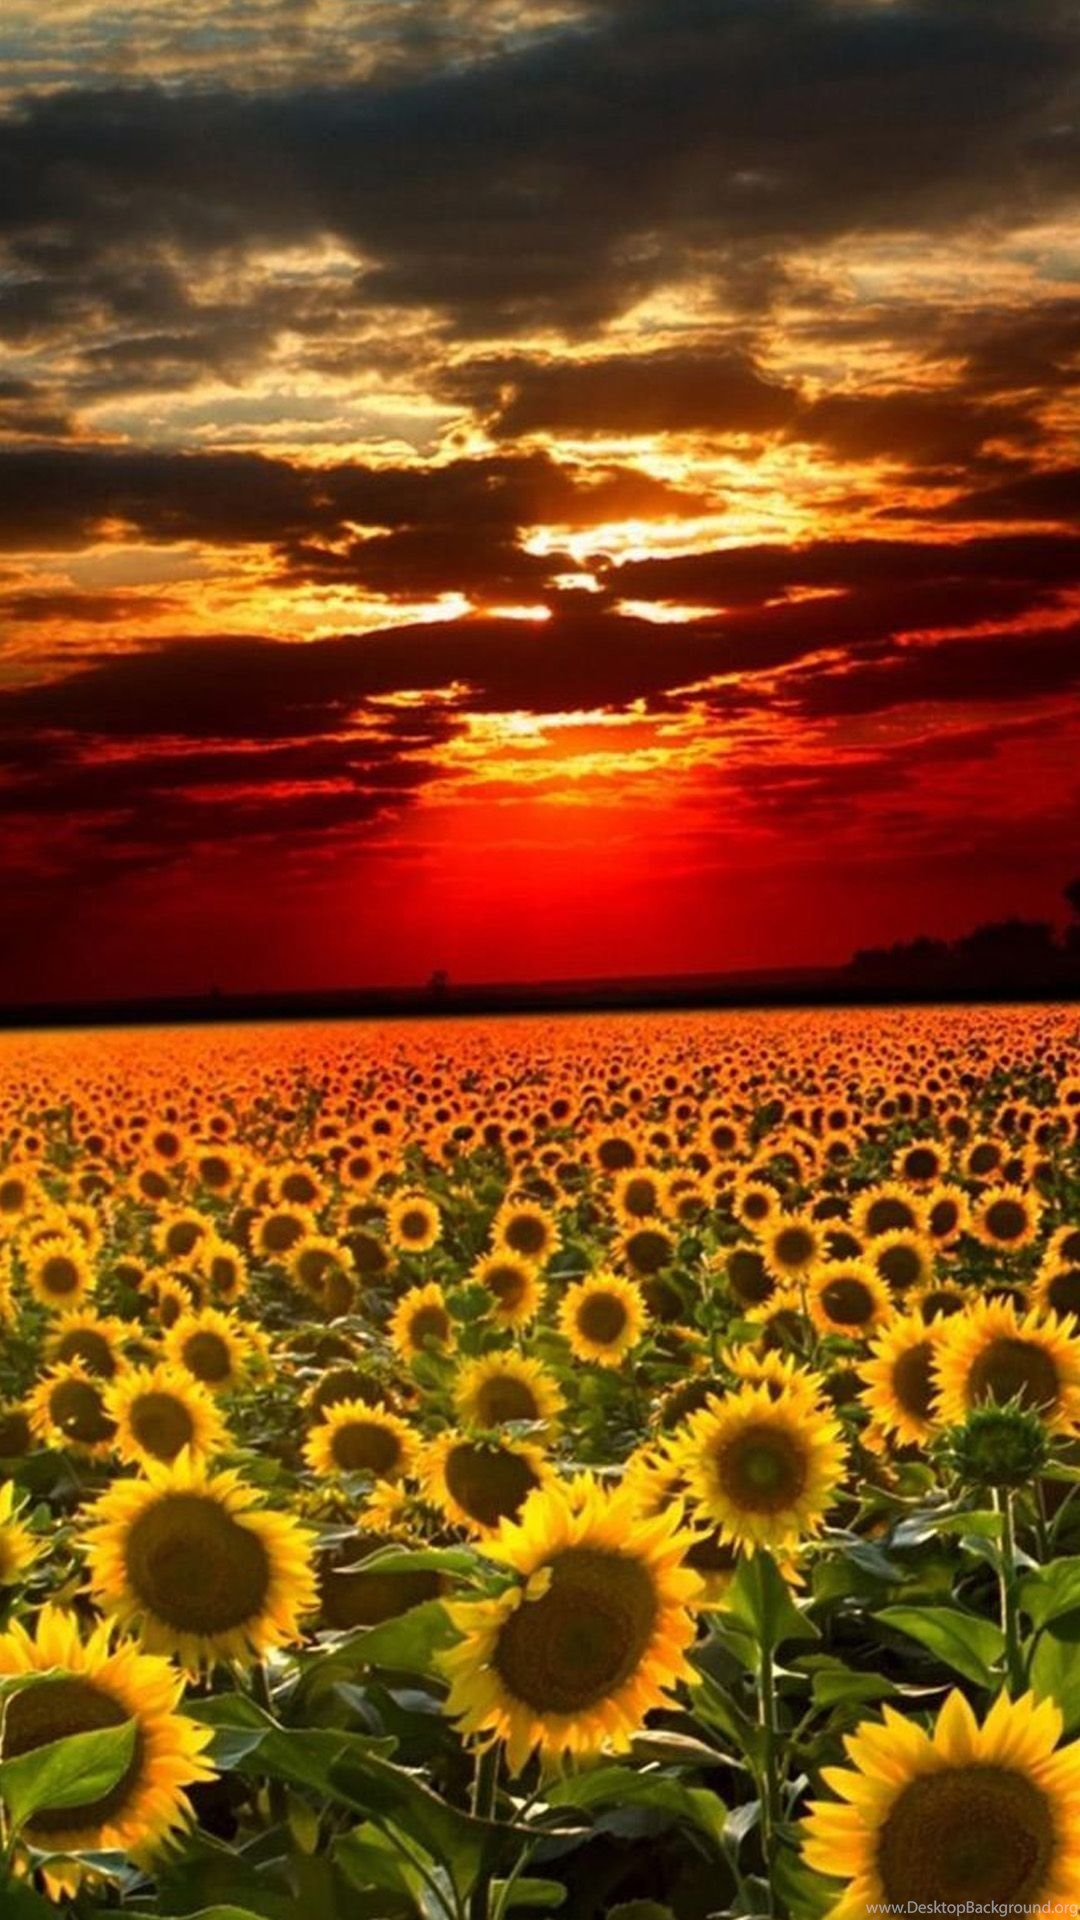 Sunflower Iphone Wallpapers For Laptops 10182 Hd Wallpapers Site Desktop Background